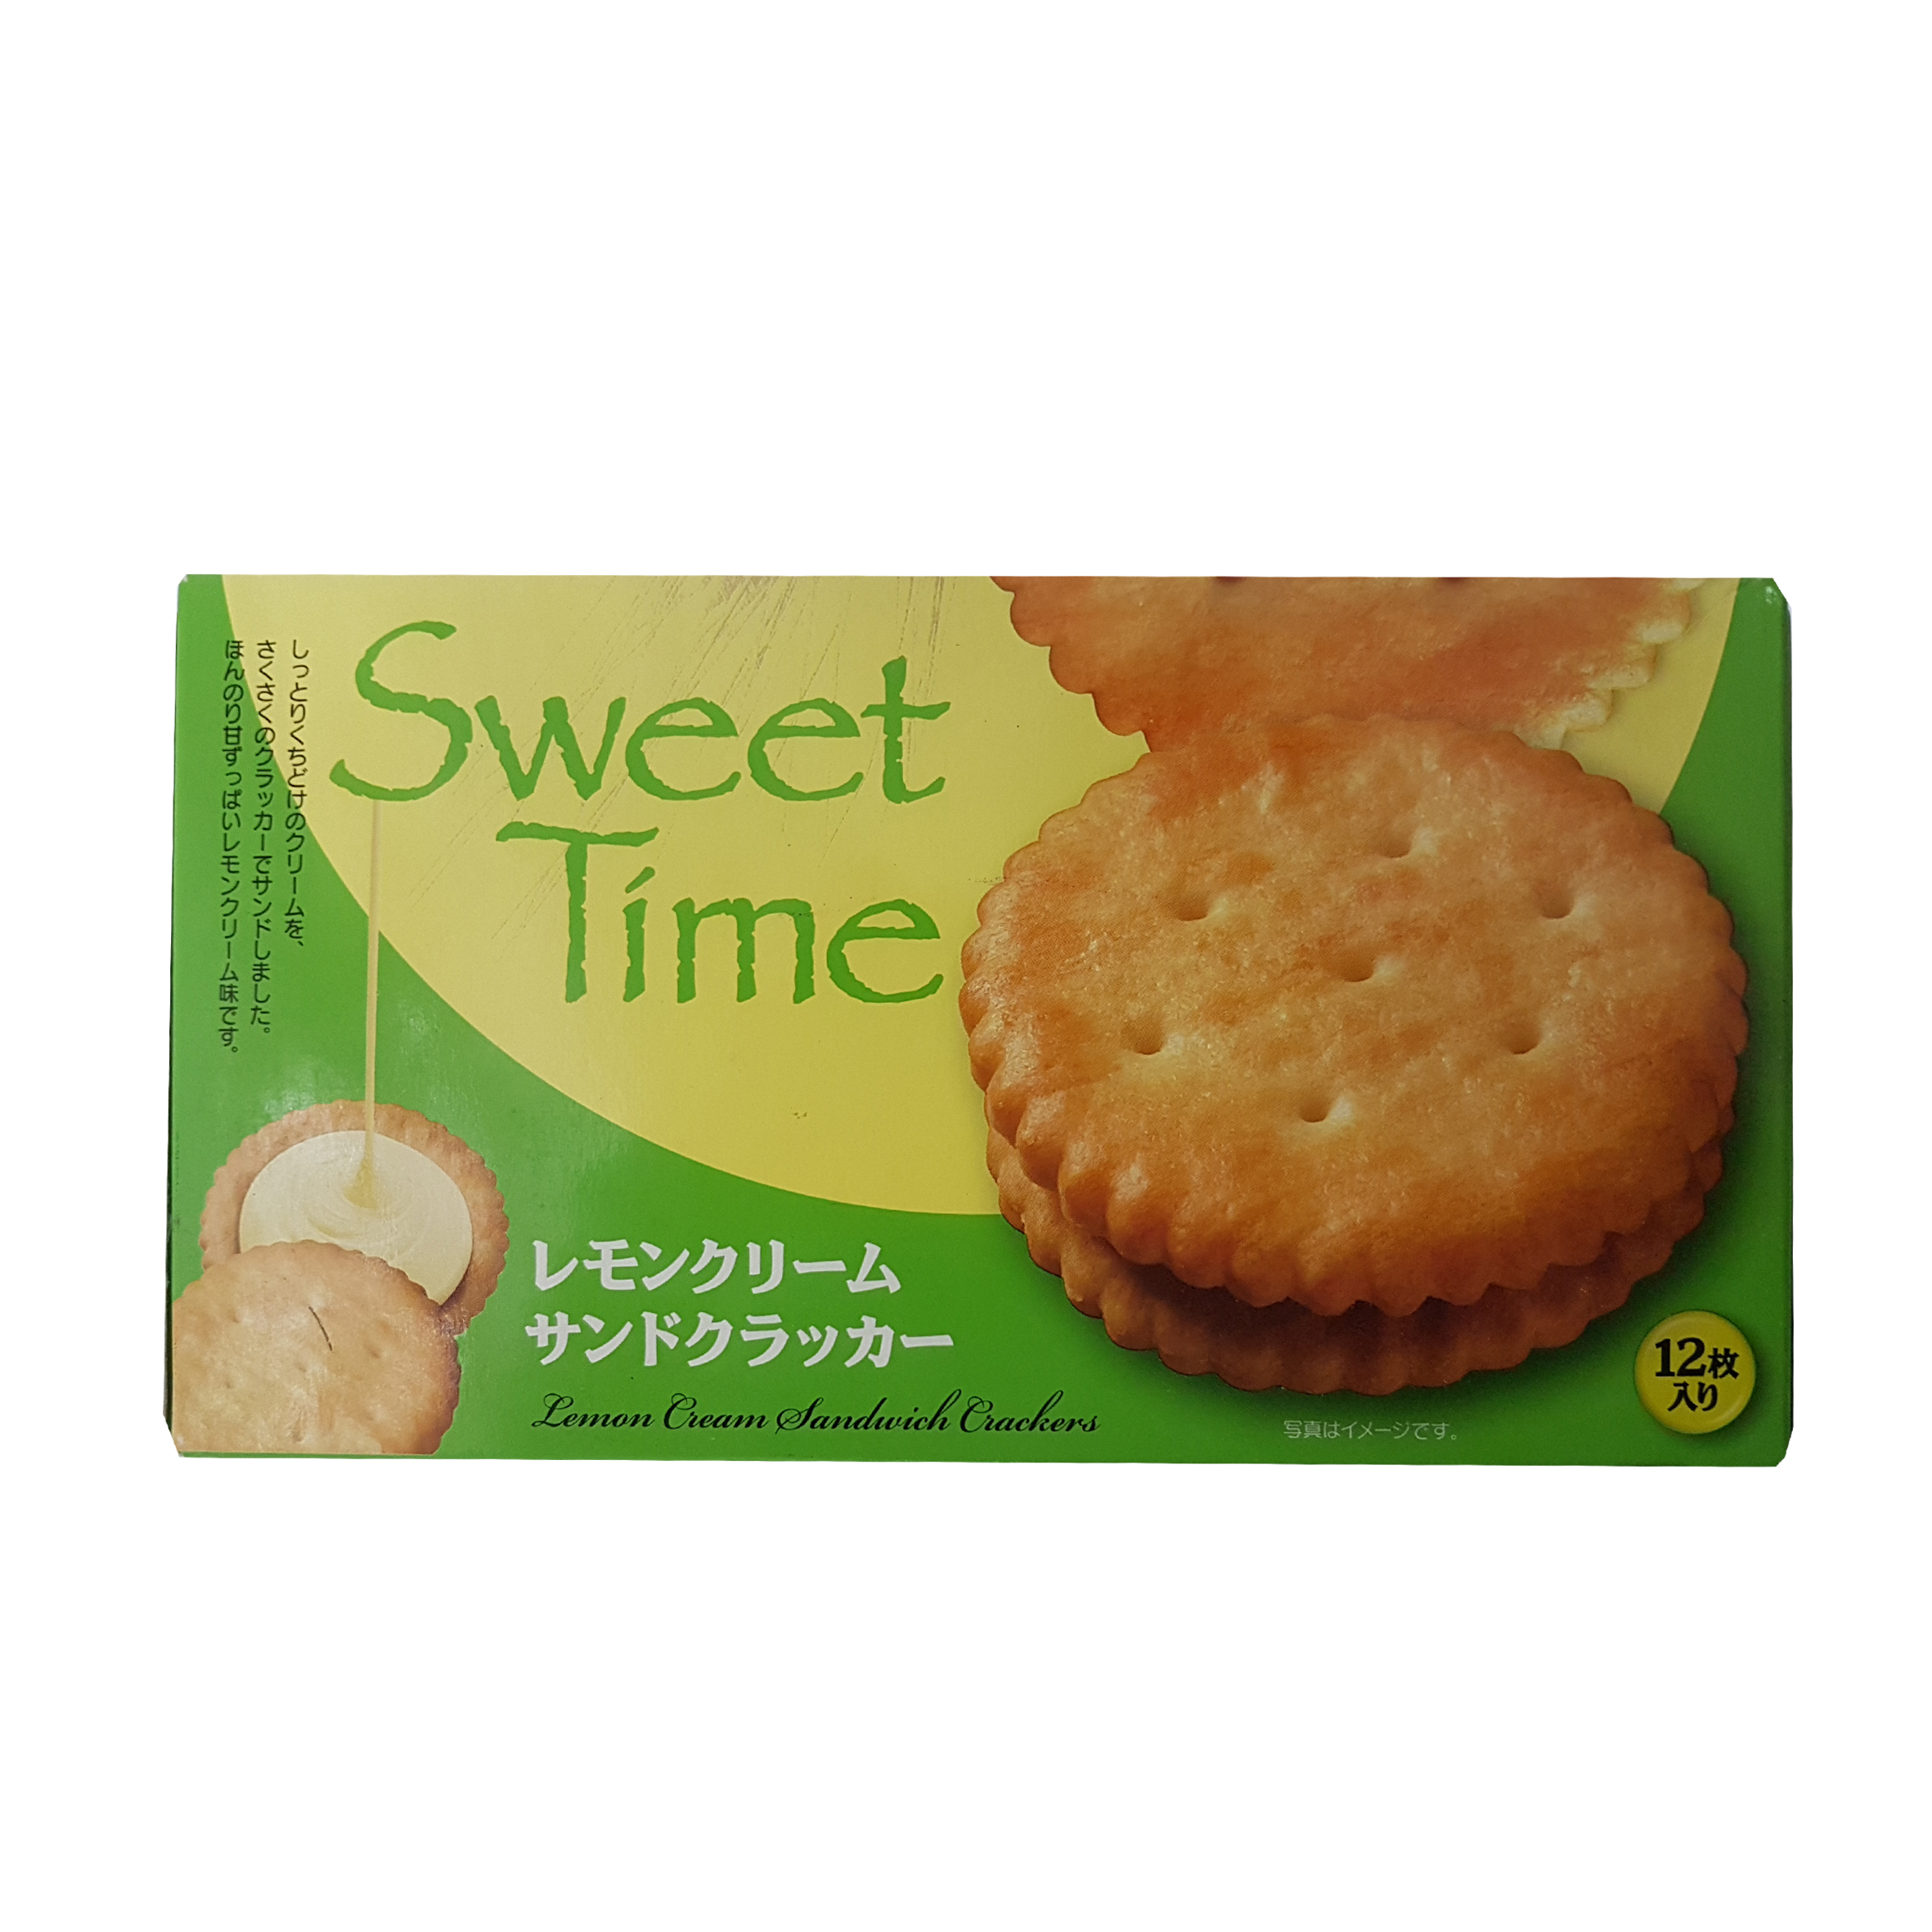 Sweet Time Biscuit.jpg